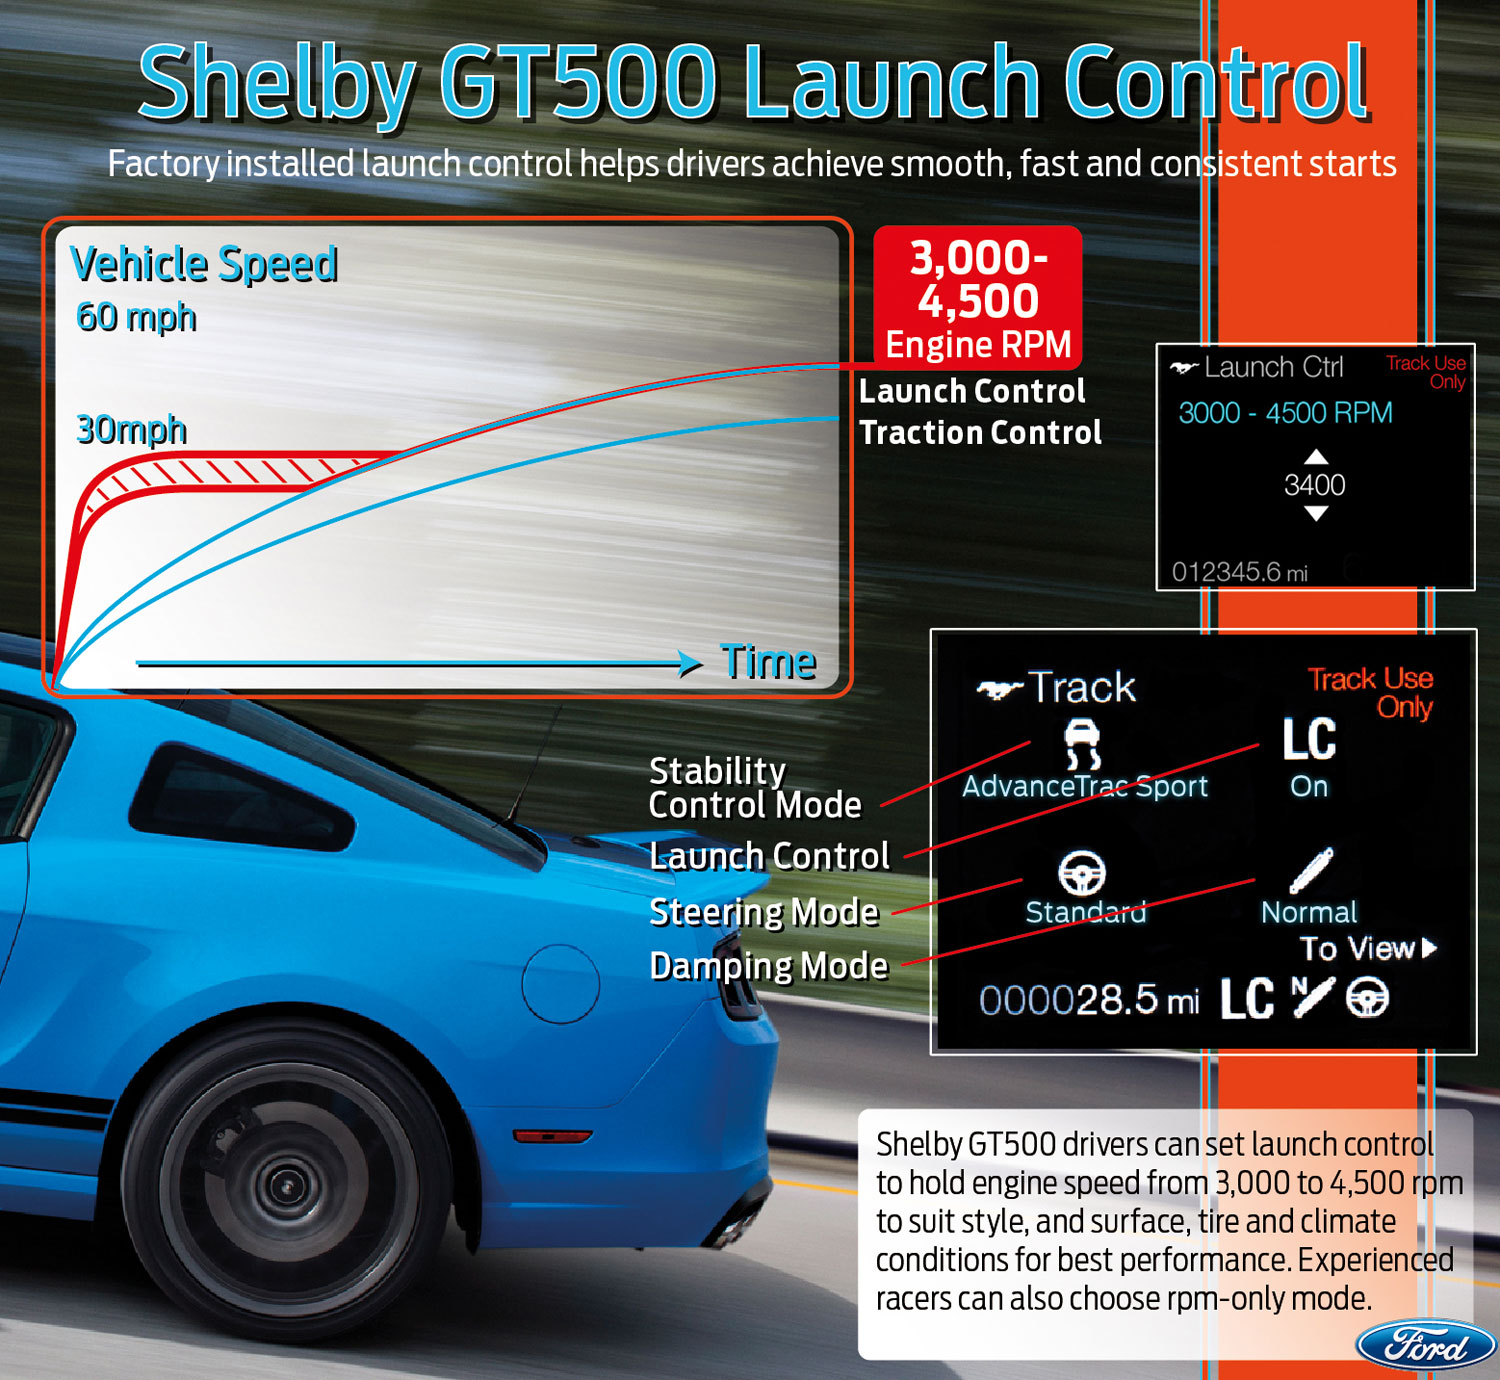 2013 Ford Shelby GT500 Launch Control Diagram1